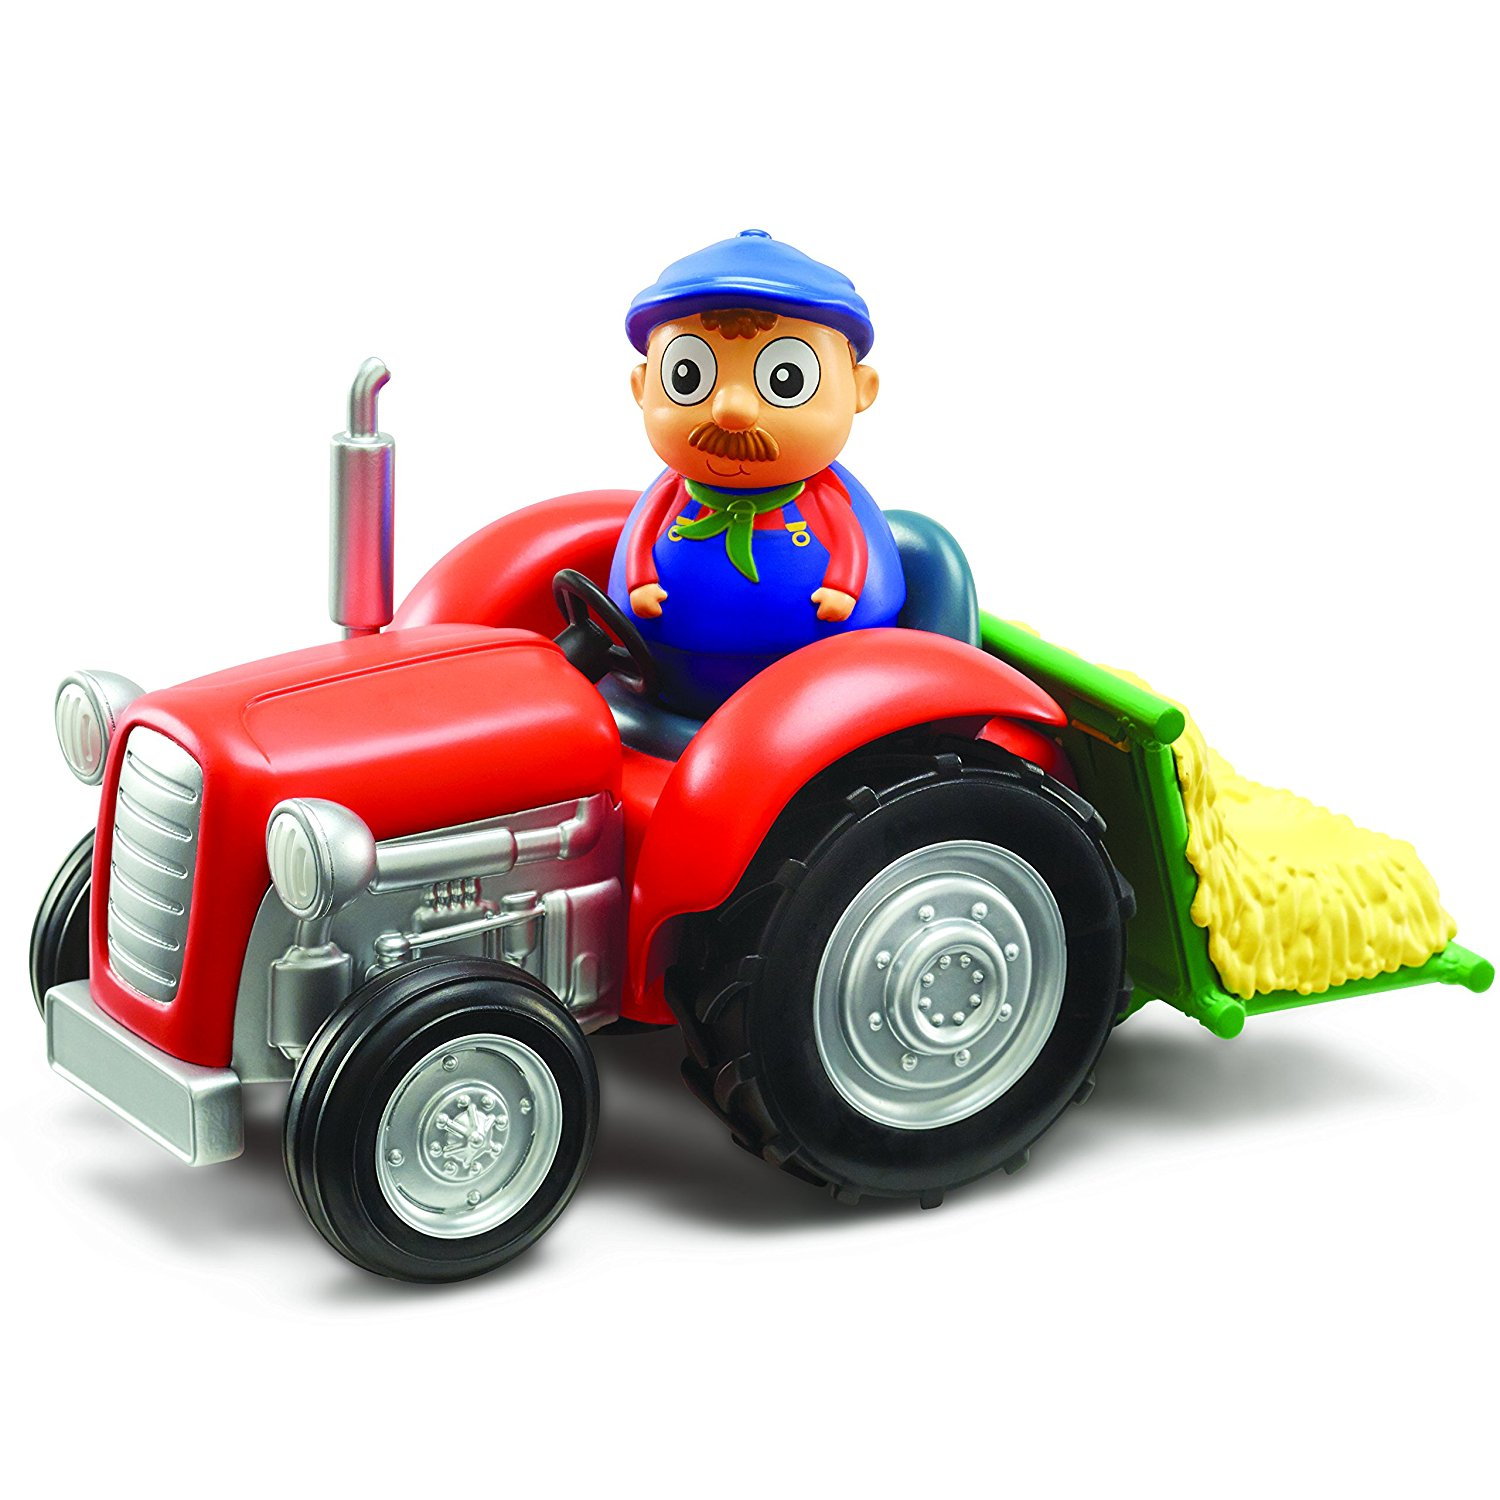 Amp-Figure Tractor Tumbler Combine Playset Farm Gifts Lovely-Toys Weebledown by Children's